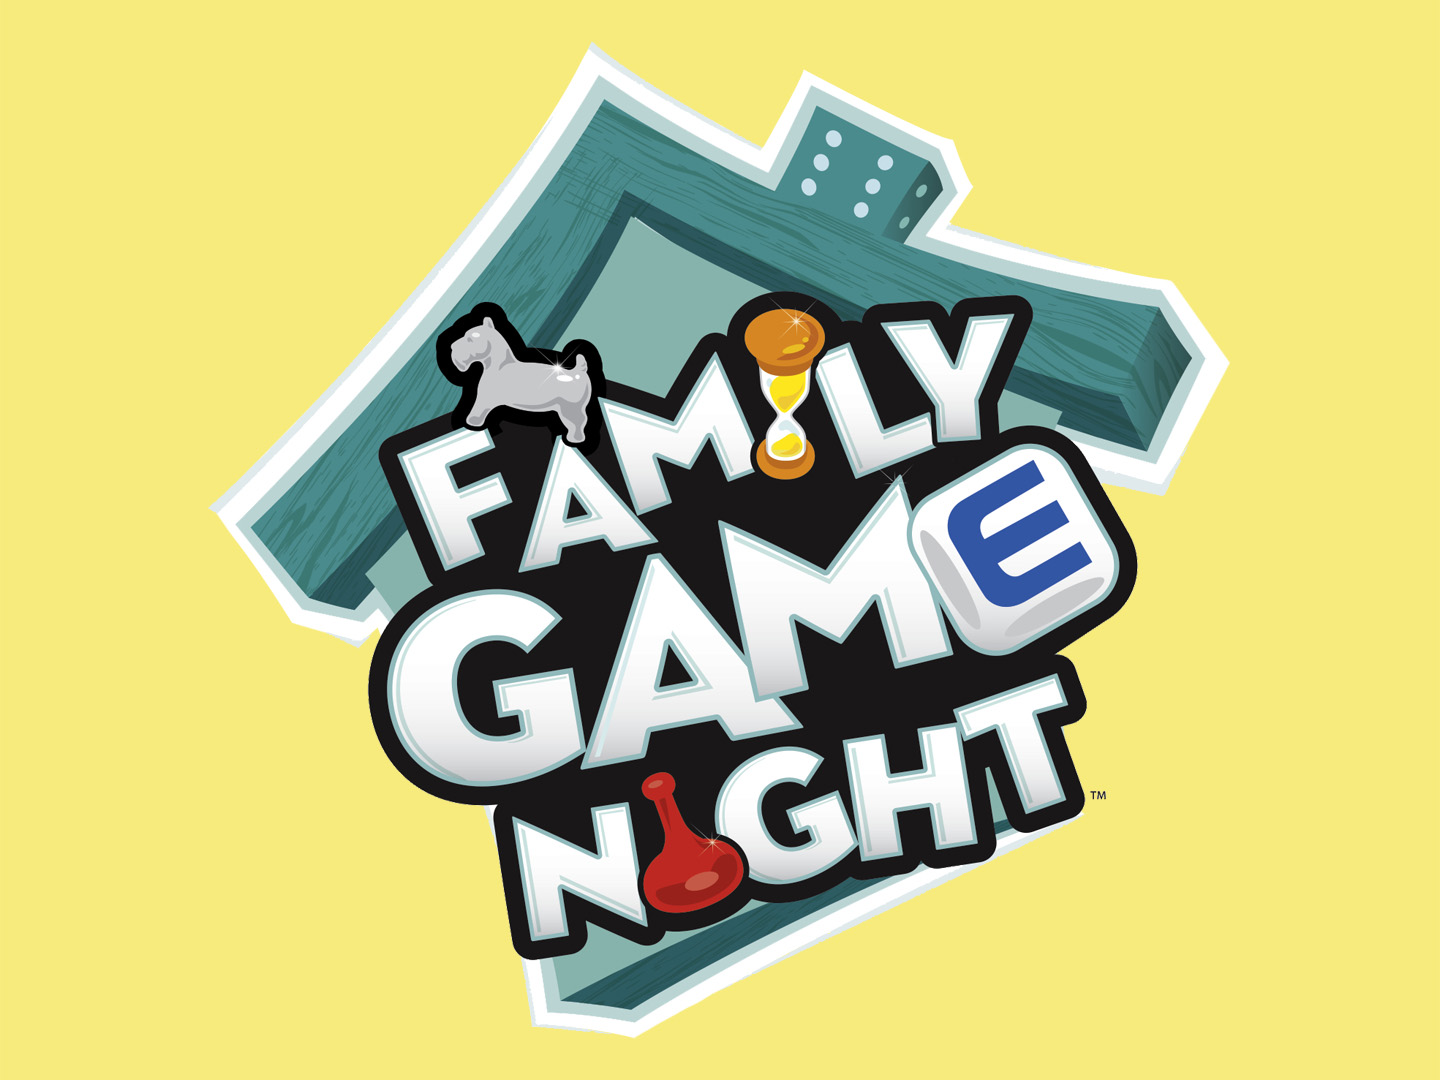 ... Game Night Clipart Free; Free Family-... Game Night Clipart Free; Free Family Fun Night Clipart - Clipart 2017 ...-12